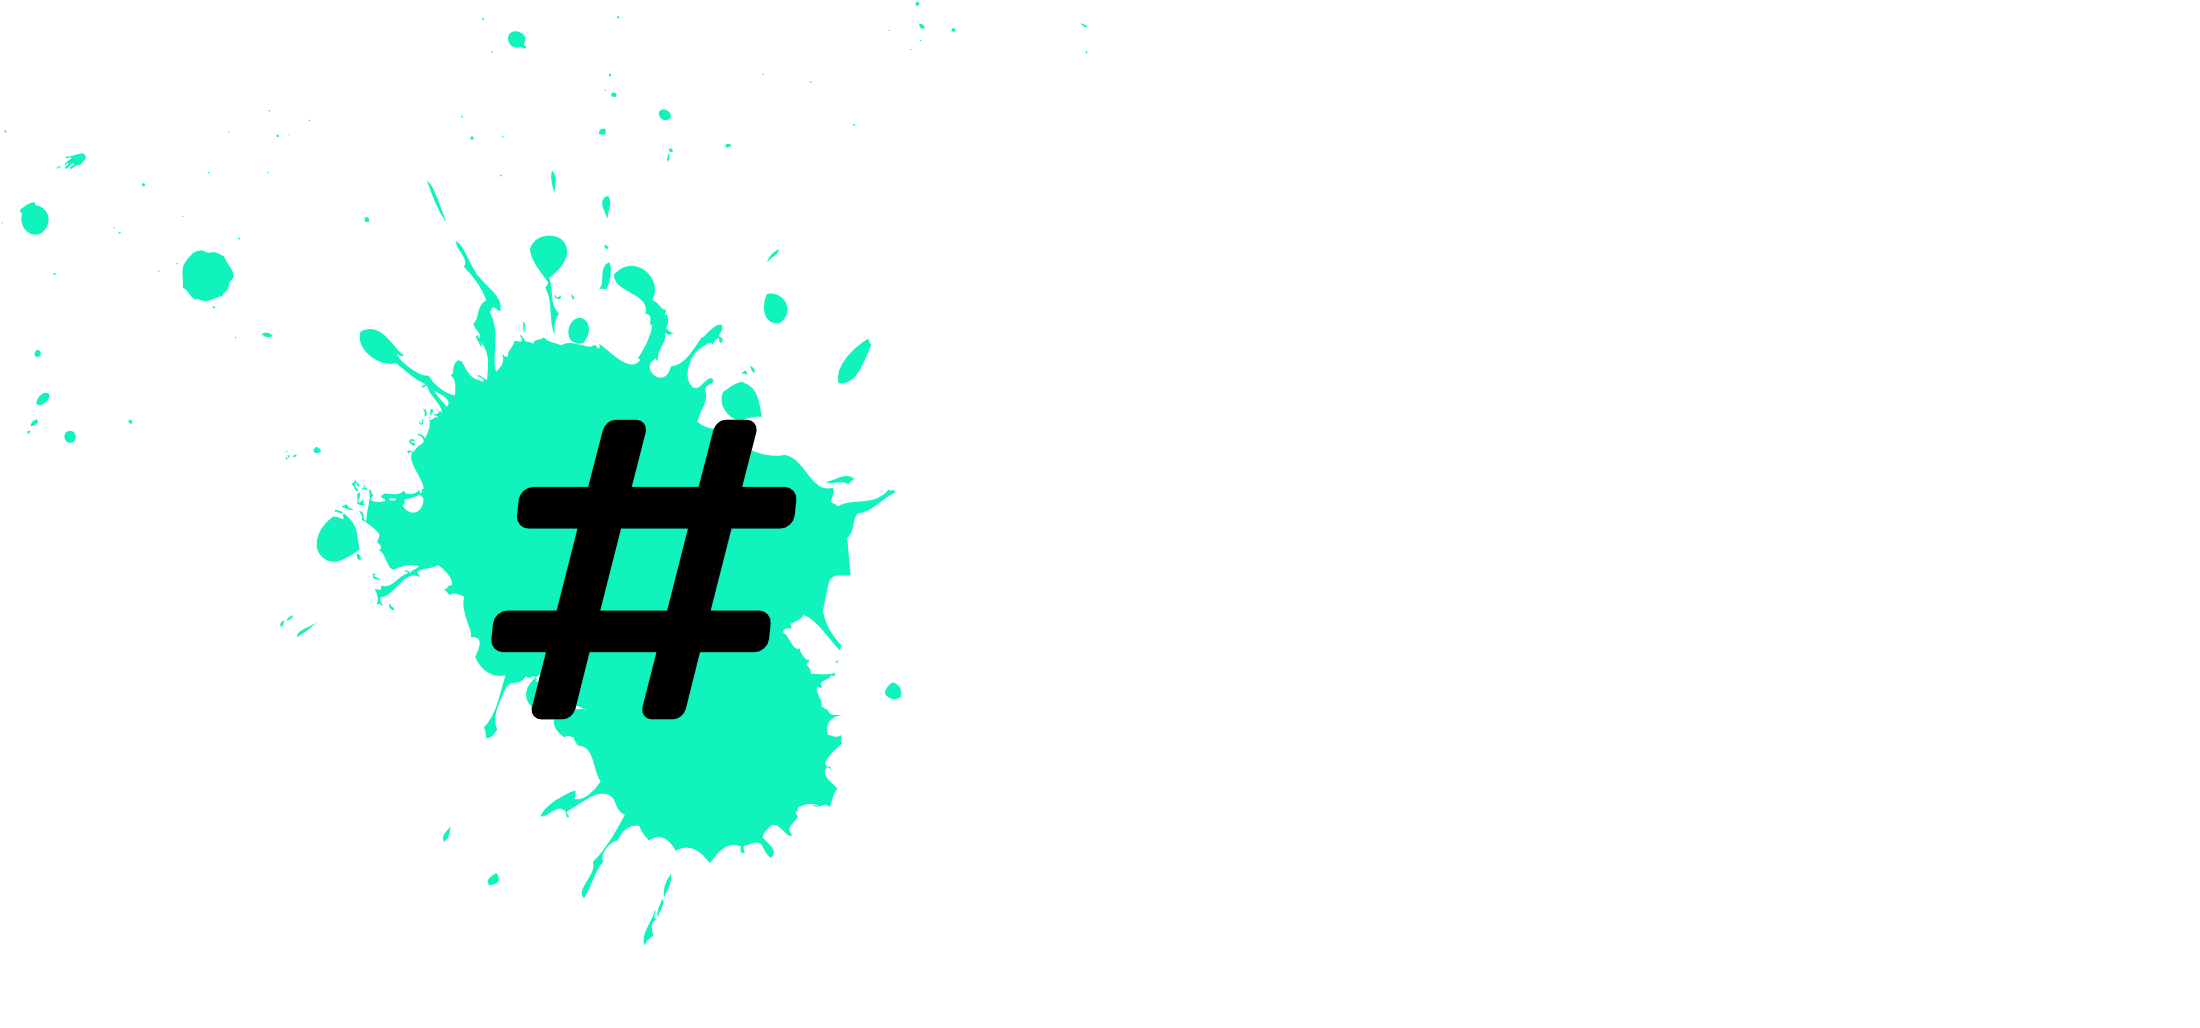 TEDxUniHalle - time for #freshtags